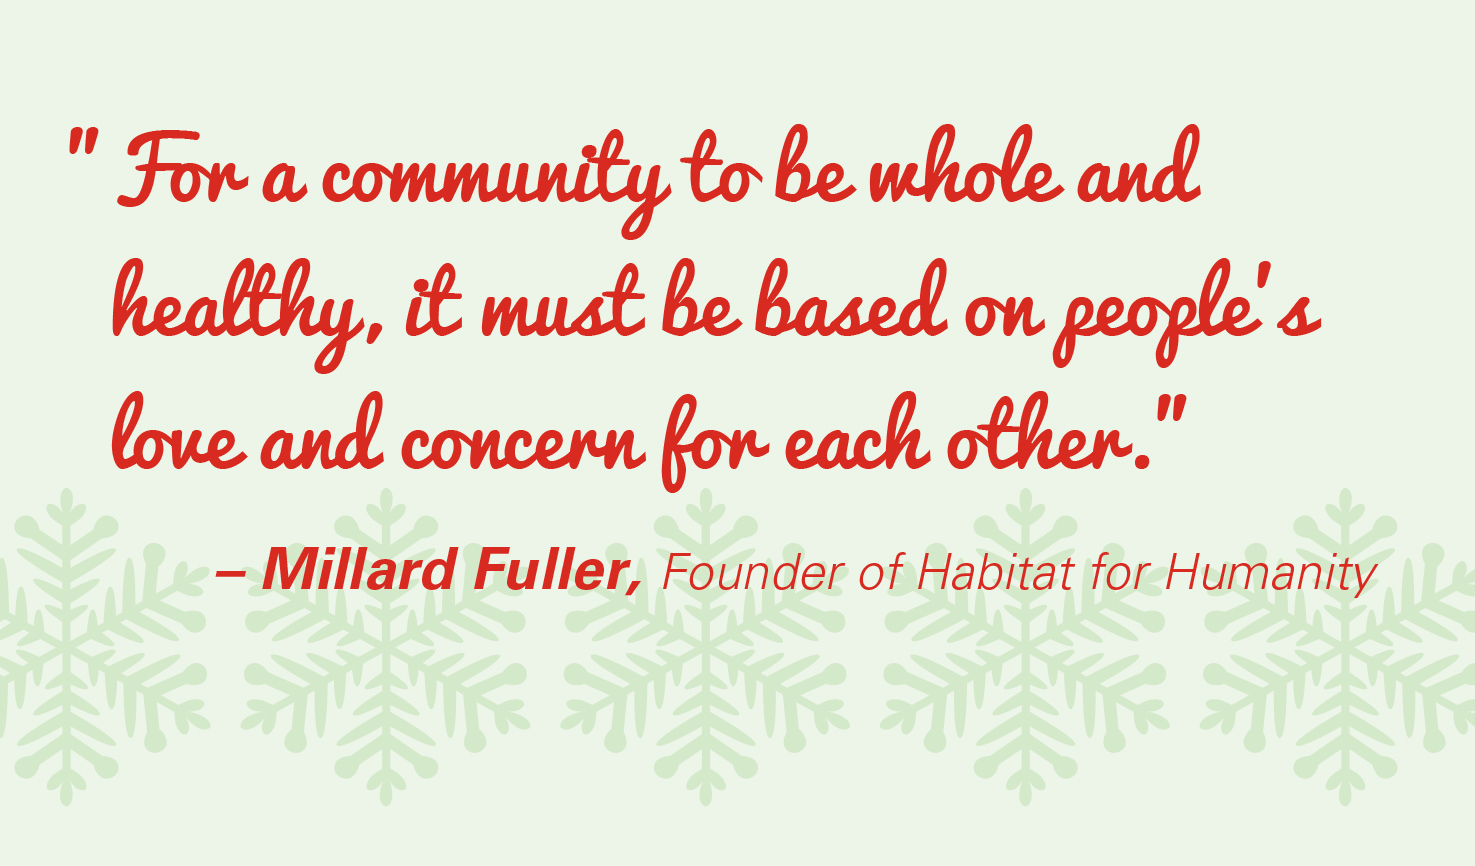 Theme of the Week - Community | Hawliau Dynol  'For a community to be whole and healthy, it must be based on people's love and concern for each other.' - Millard Fuller